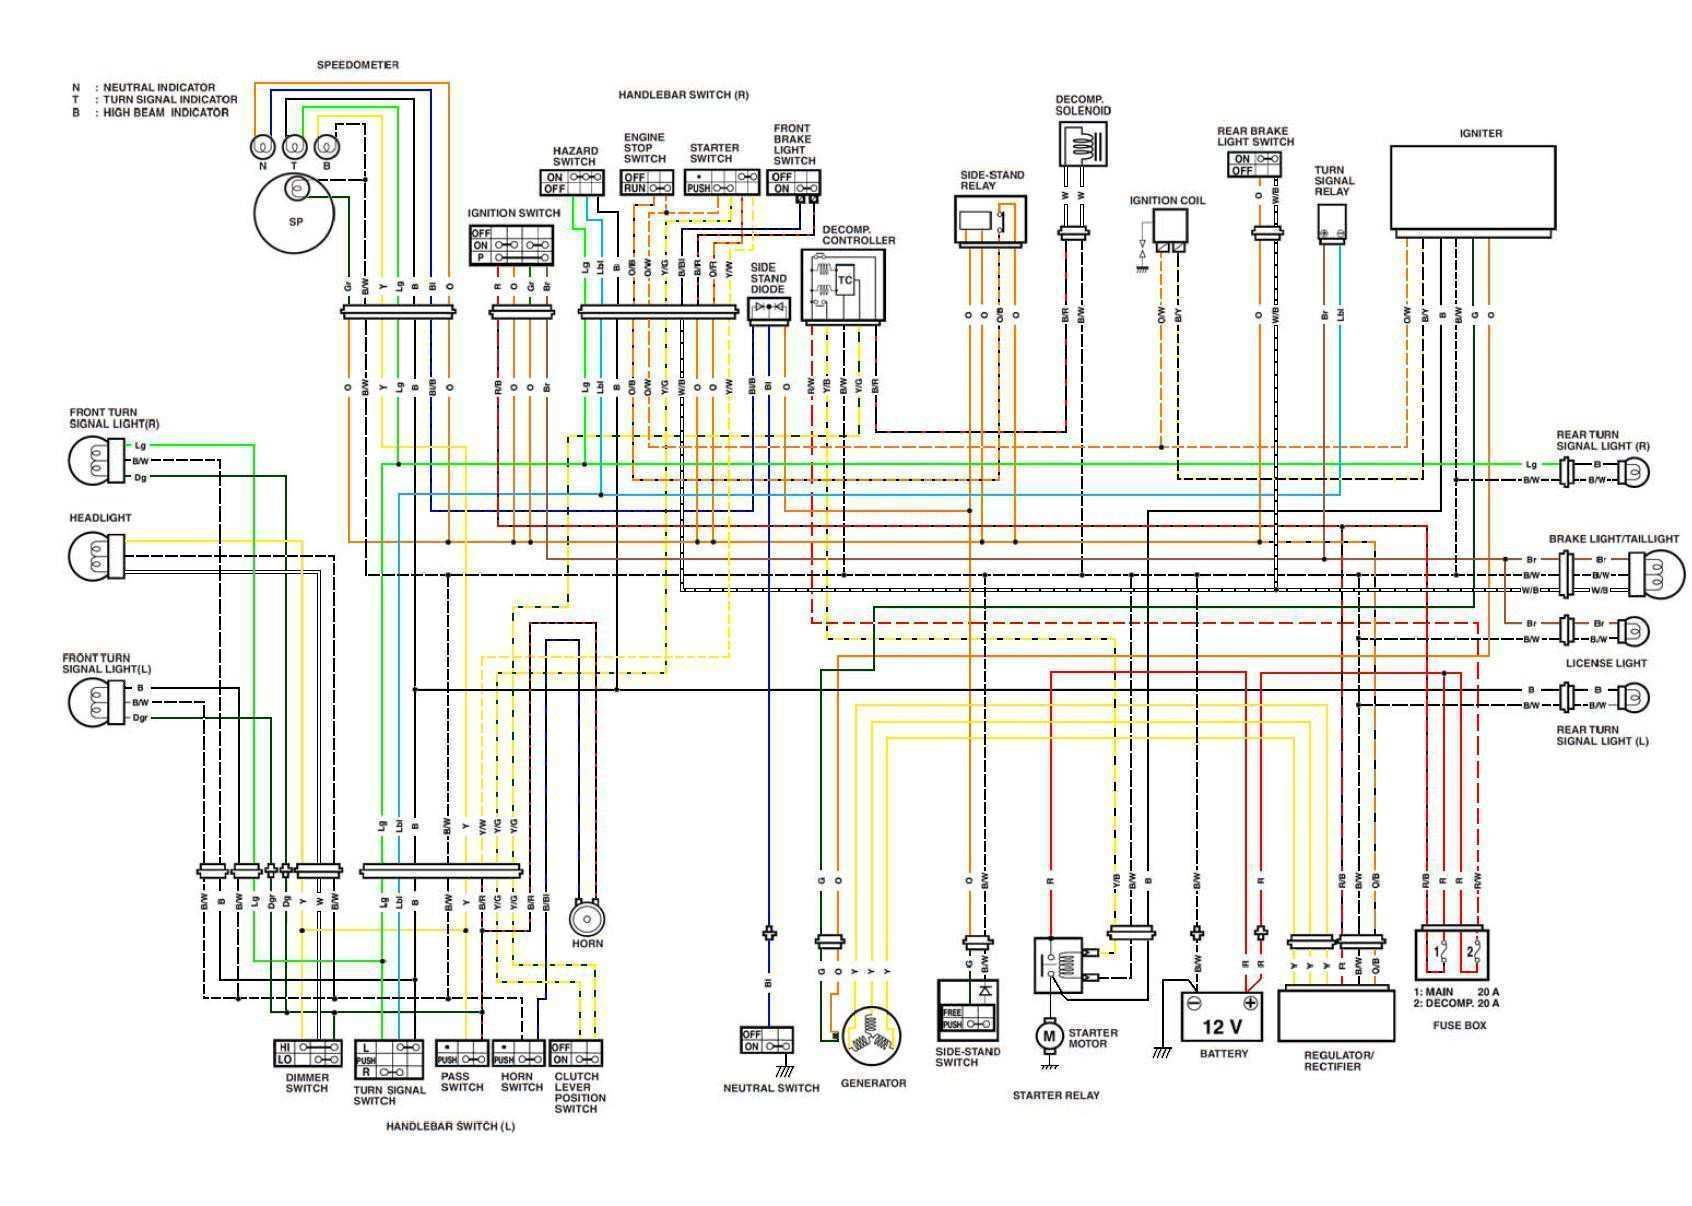 2003 pt cruiser fuse diagram schematic diagrams rh ogmconsulting co